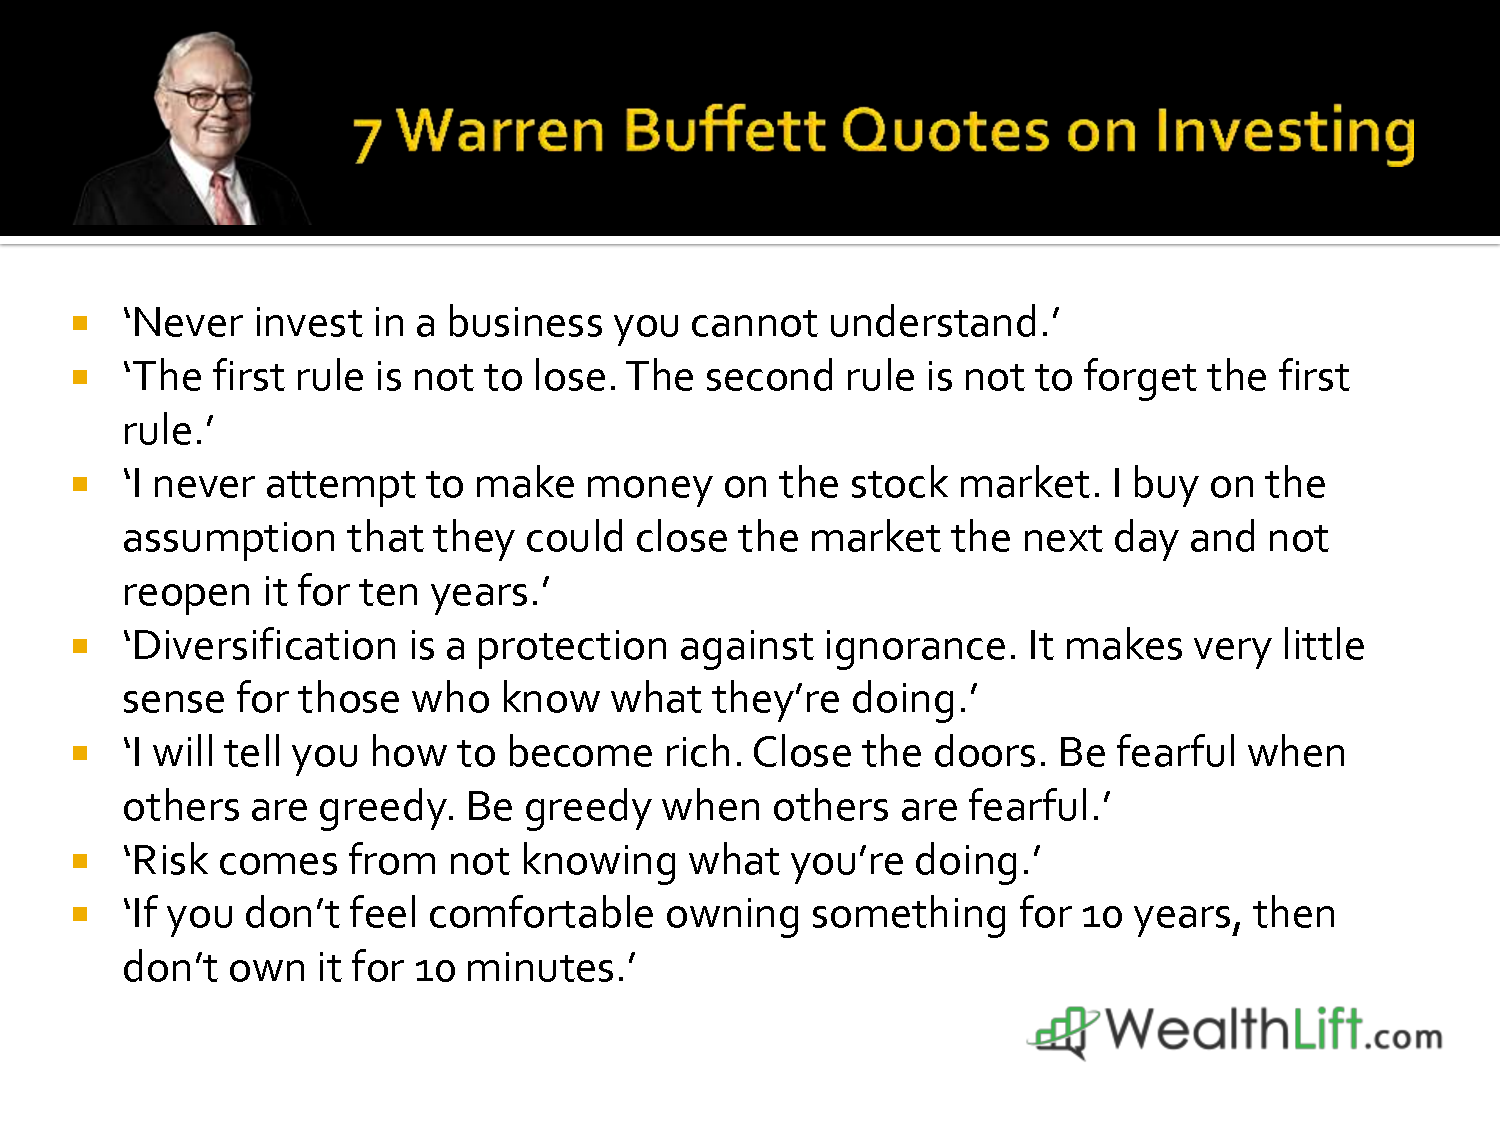 Famous quotes about 'Investing' - QuotationOf . COM